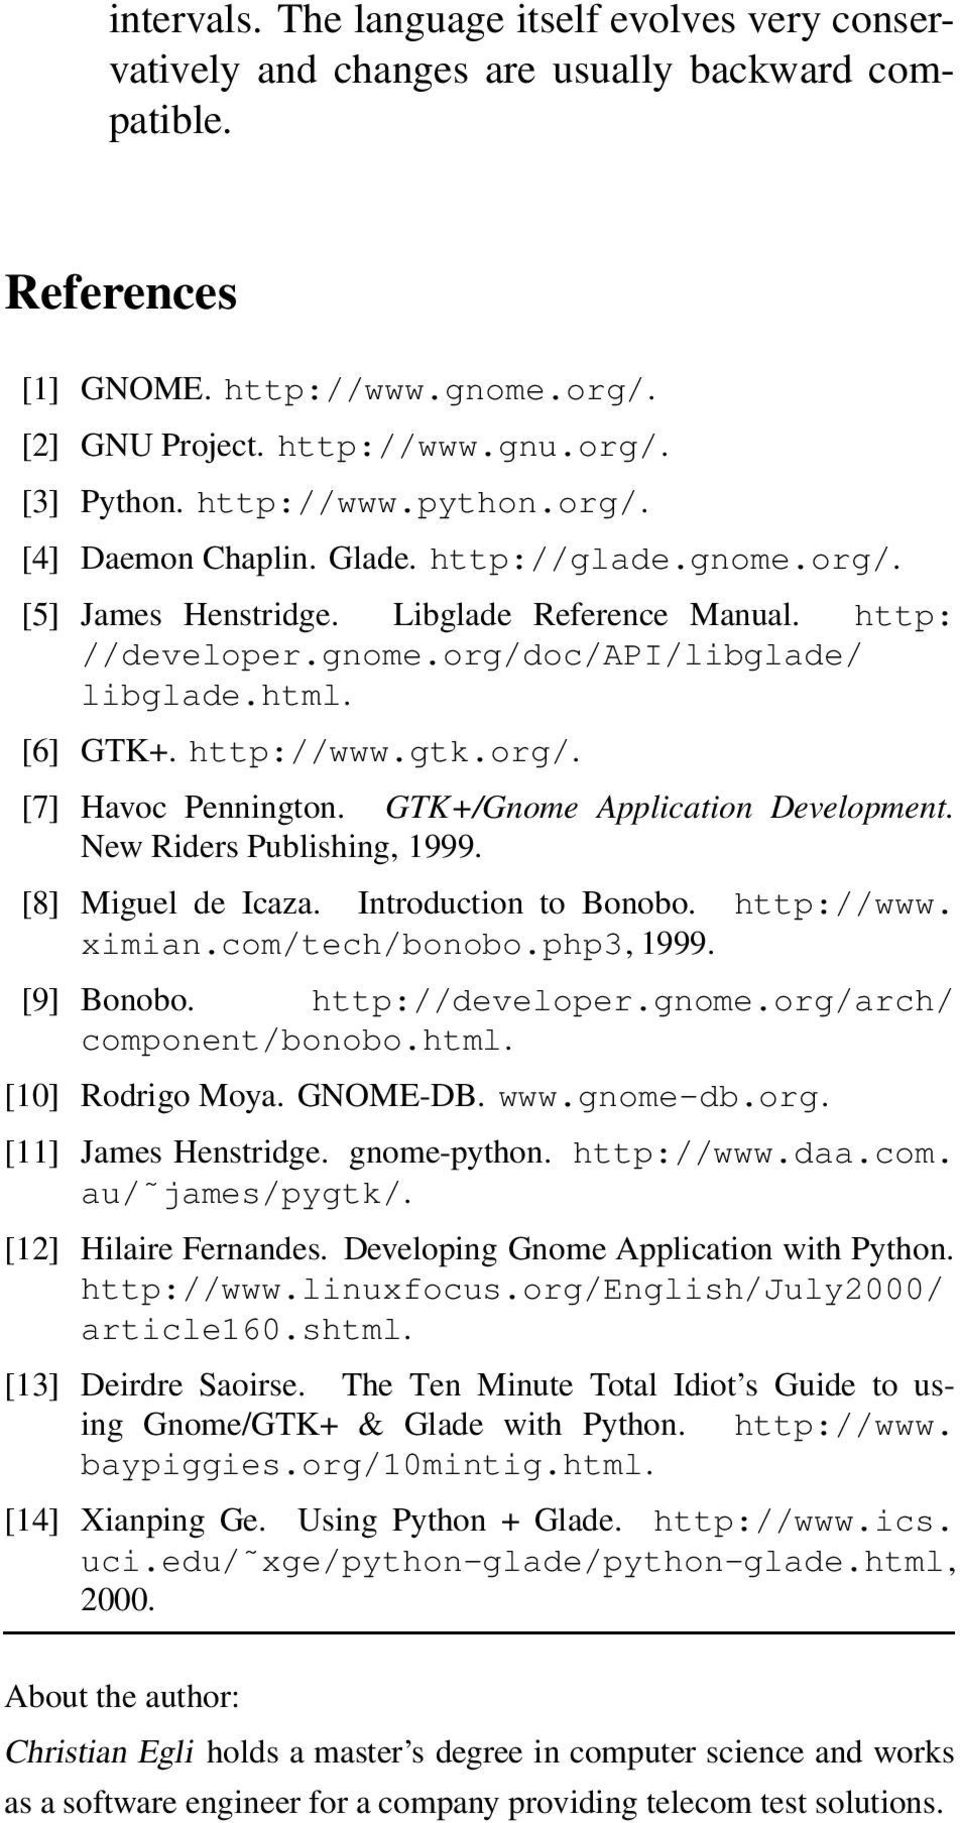 http://www.gtk.org/. [7] Havoc Pennington. GTK+/Gnome Application Development. New Riders Publishing, 1999. [8] Miguel de Icaza. Introduction to Bonobo. http://www. ximian.com/tech/bonobo.php3, 1999.